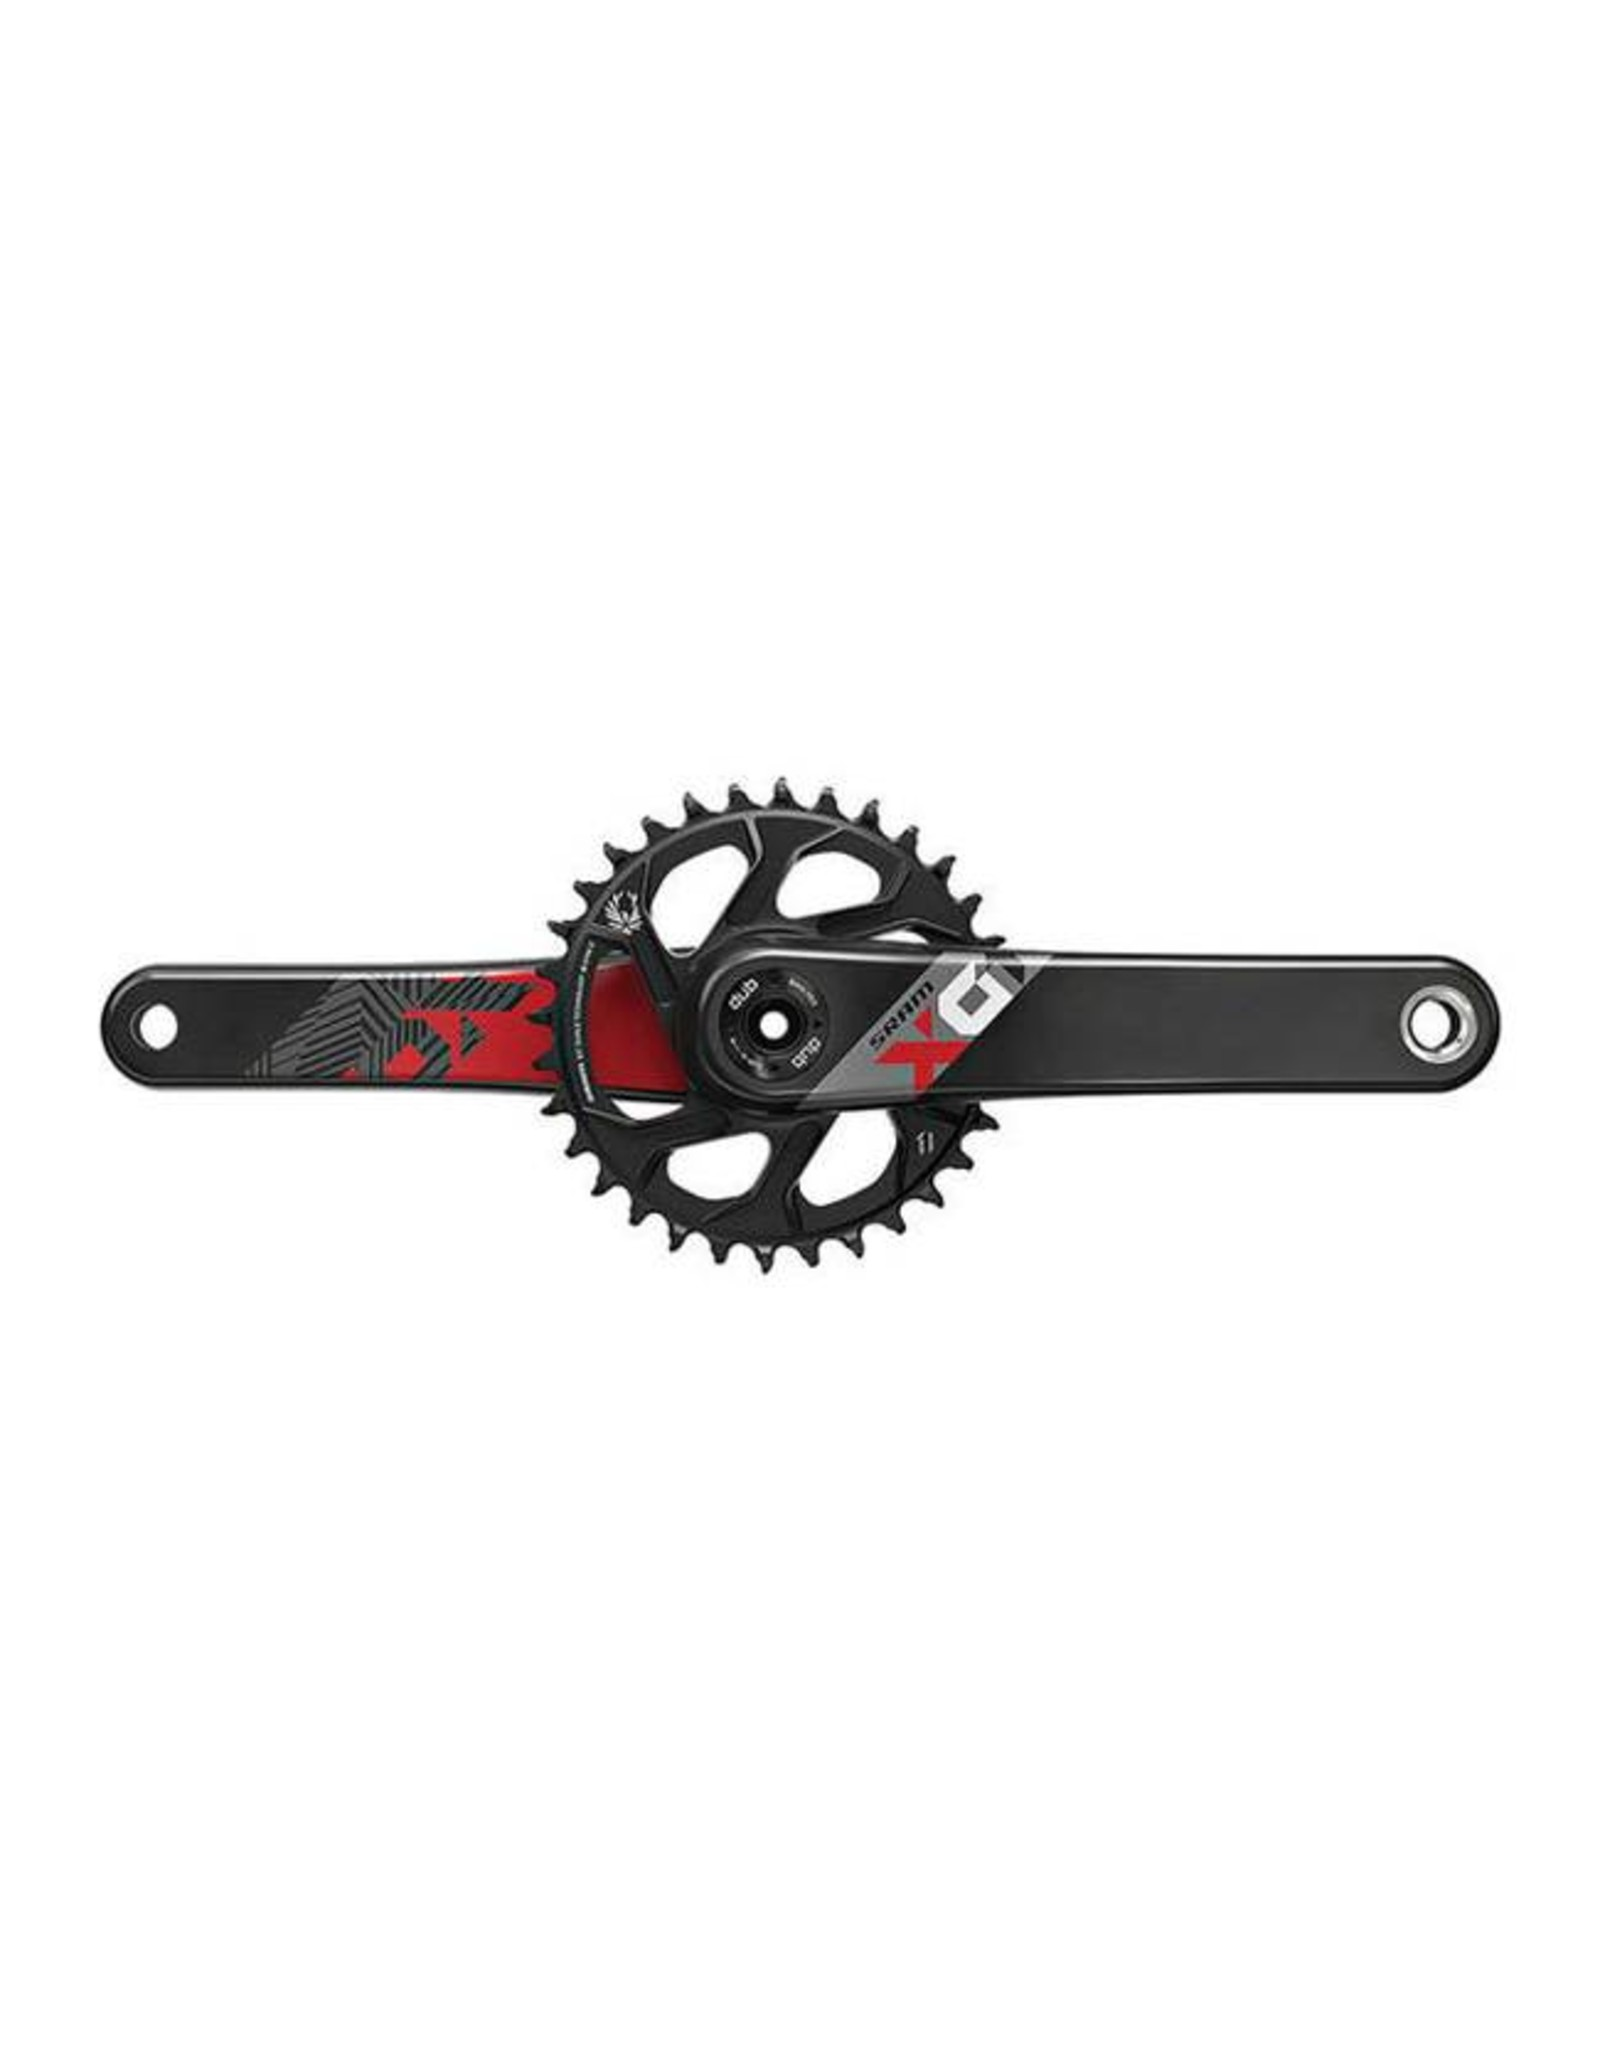 SRAM SRAM X01 Eagle Carbon Boost 148 DUB Crankset 170mm Direct Mount 32t X- Sync 2 Chainring Red, Bottom Bracket Not Included